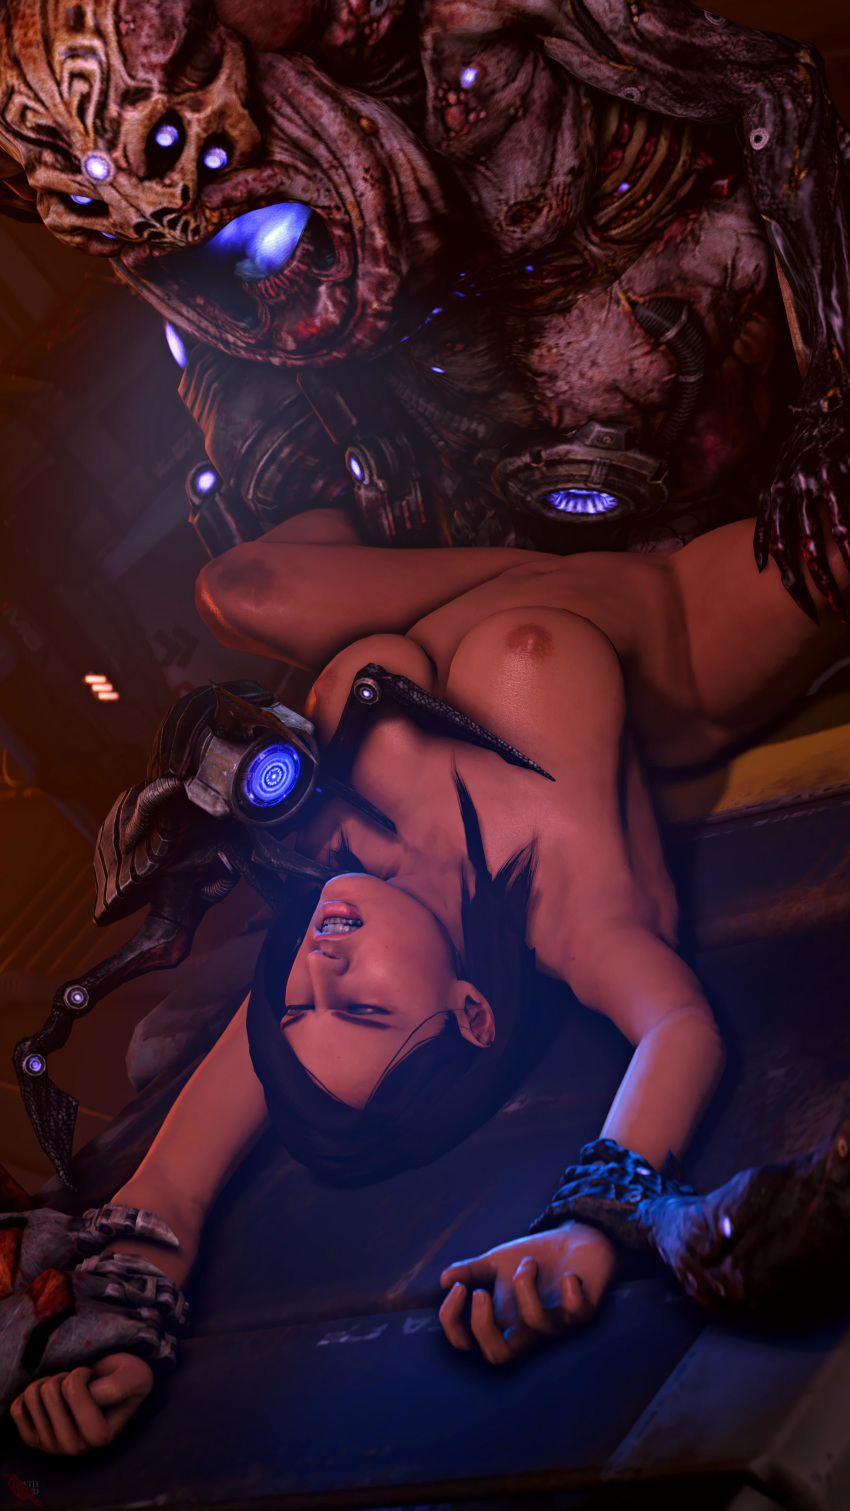 mass effect gifs How not to summon a demon lord klem